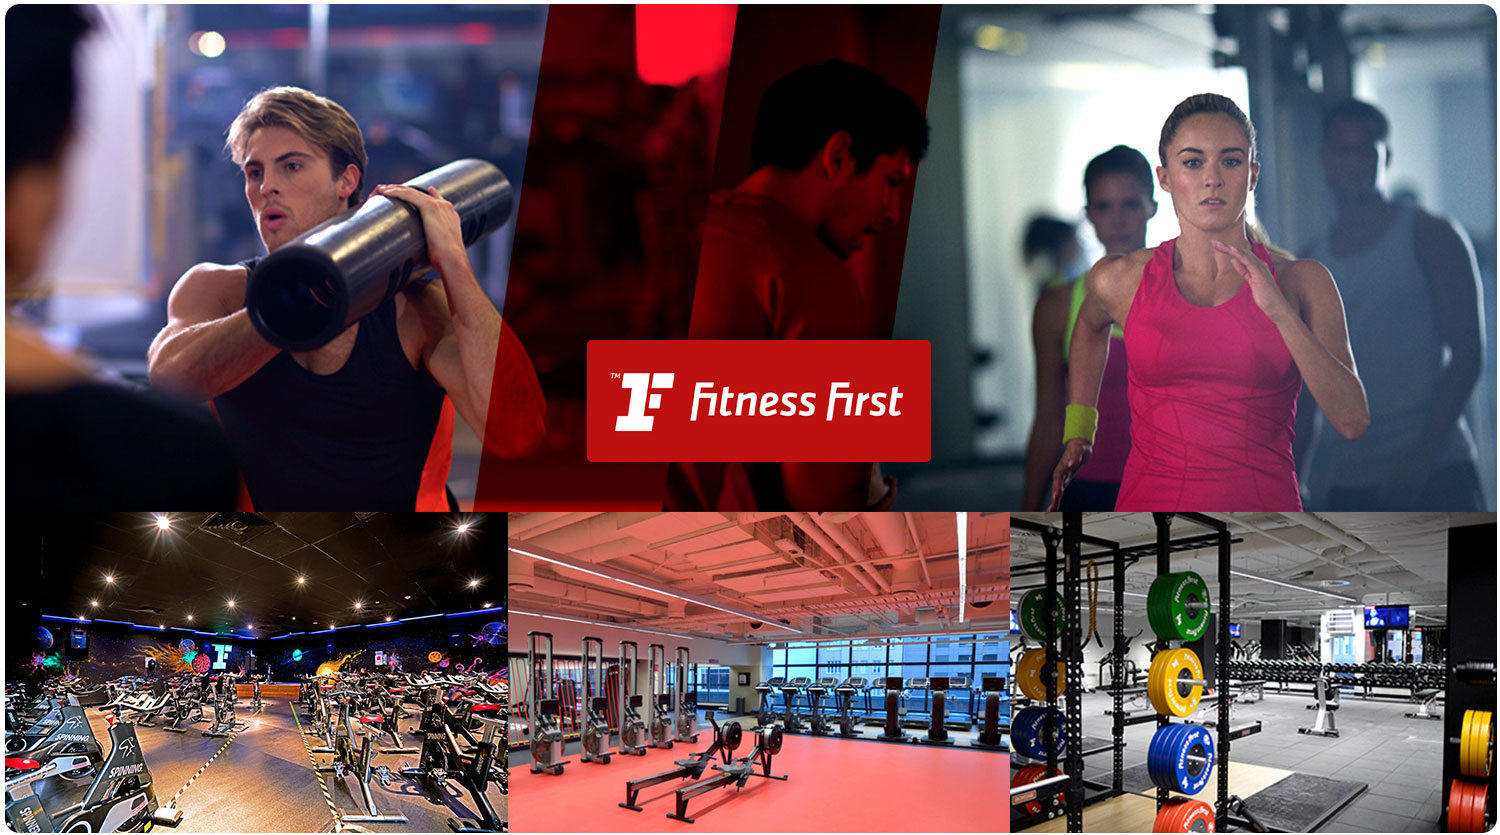 Start your Fitness Journey with Fitness First with only $14.95 for 14 days at Fitness First Balgowlah NSW. Experience our first class gym and freestyle classes inc. Zumba, Pilates, Yoga, HIIT, Les Mills and more. Take the first step with Fitness First Balgowlah NSW.